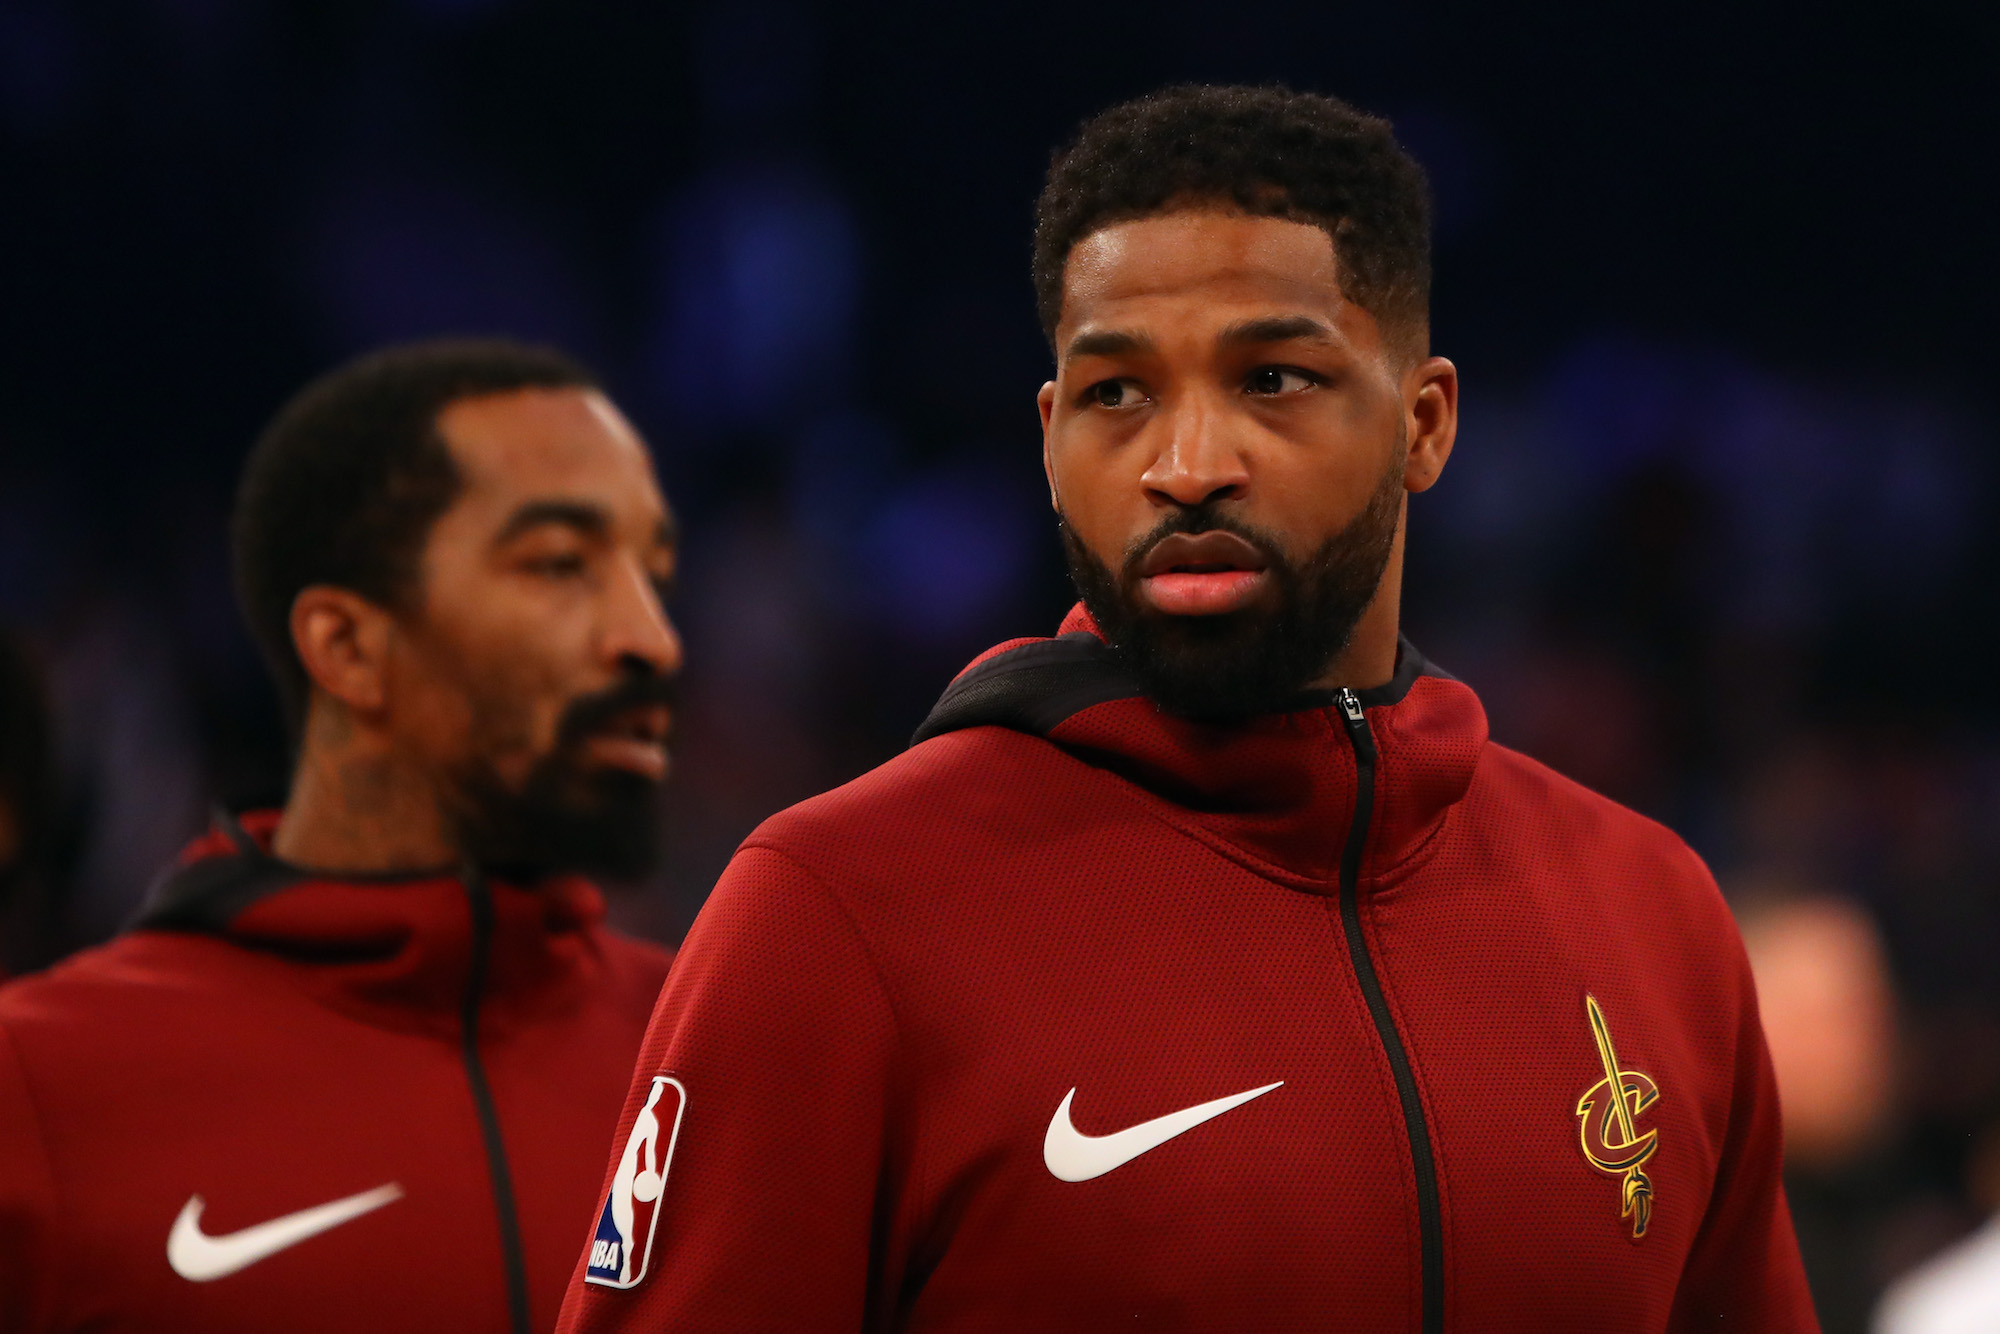 Tristan Thompson Is Benched in NBA Playoff Game Amid Cheating Scandal